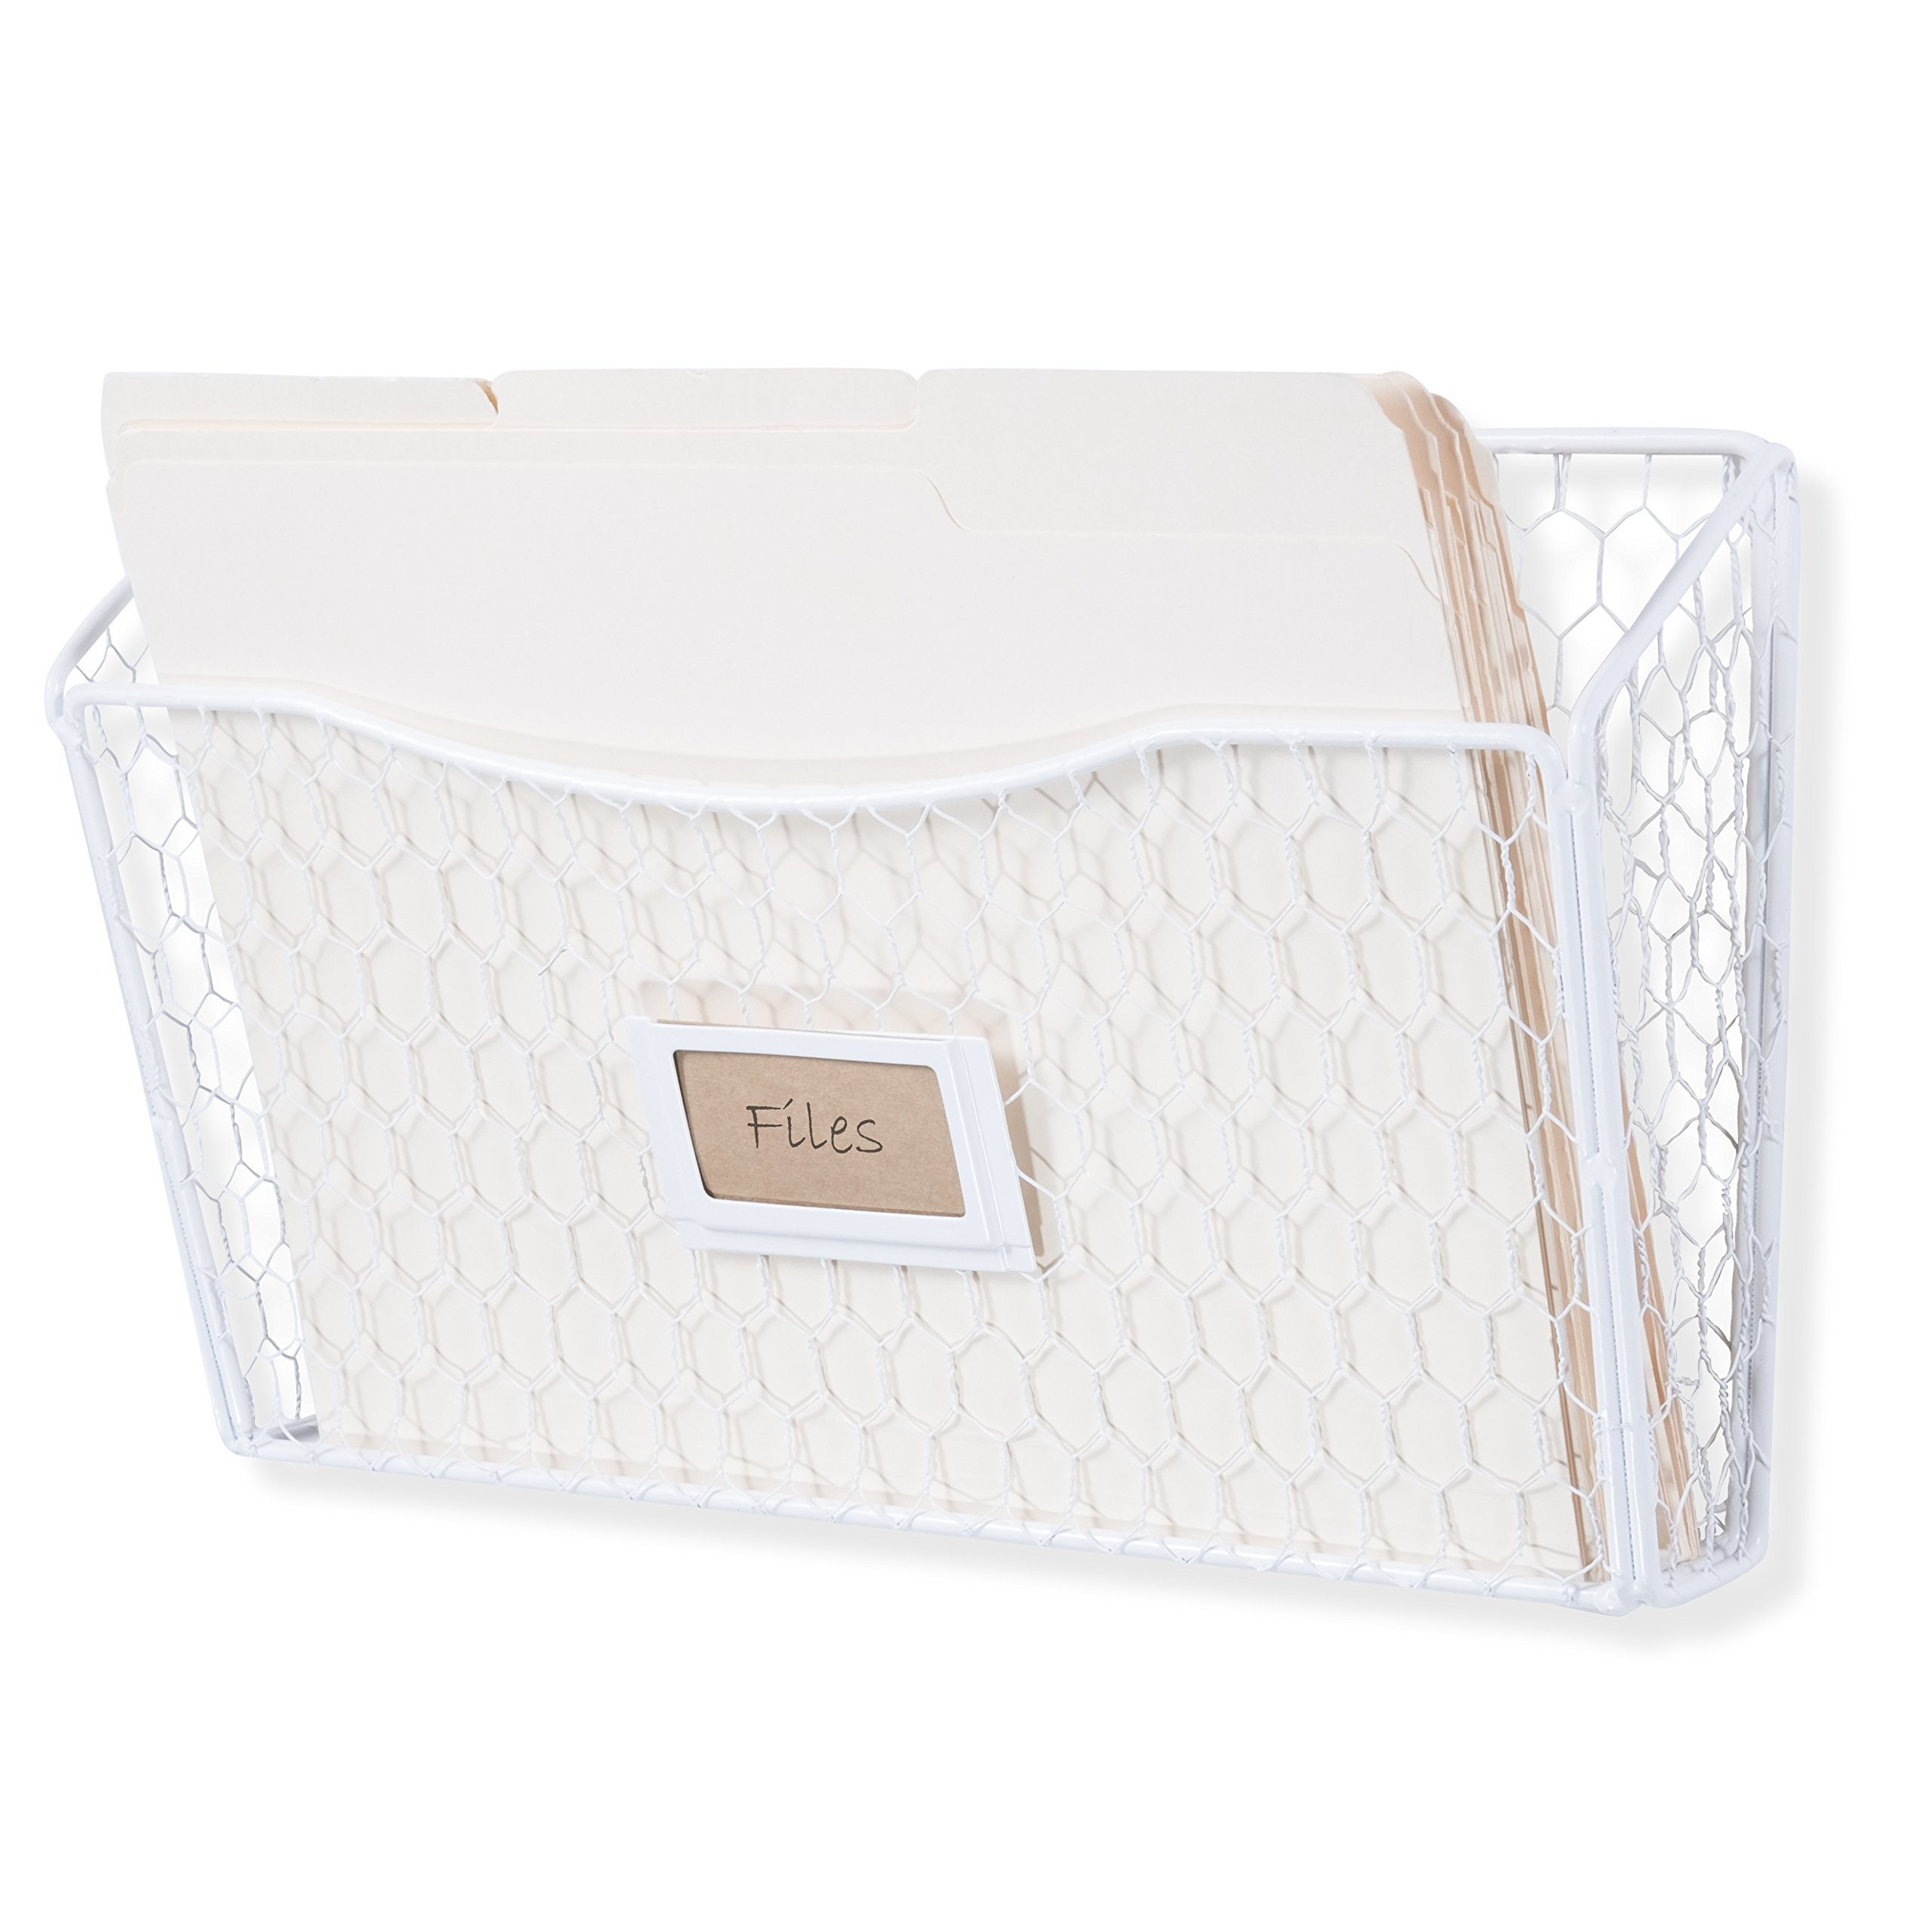 Wall35 Felic Hanging File Holder - Wall Mounted Metal Wire Rack - Office Folder Organizer with Name Tag Slot in White